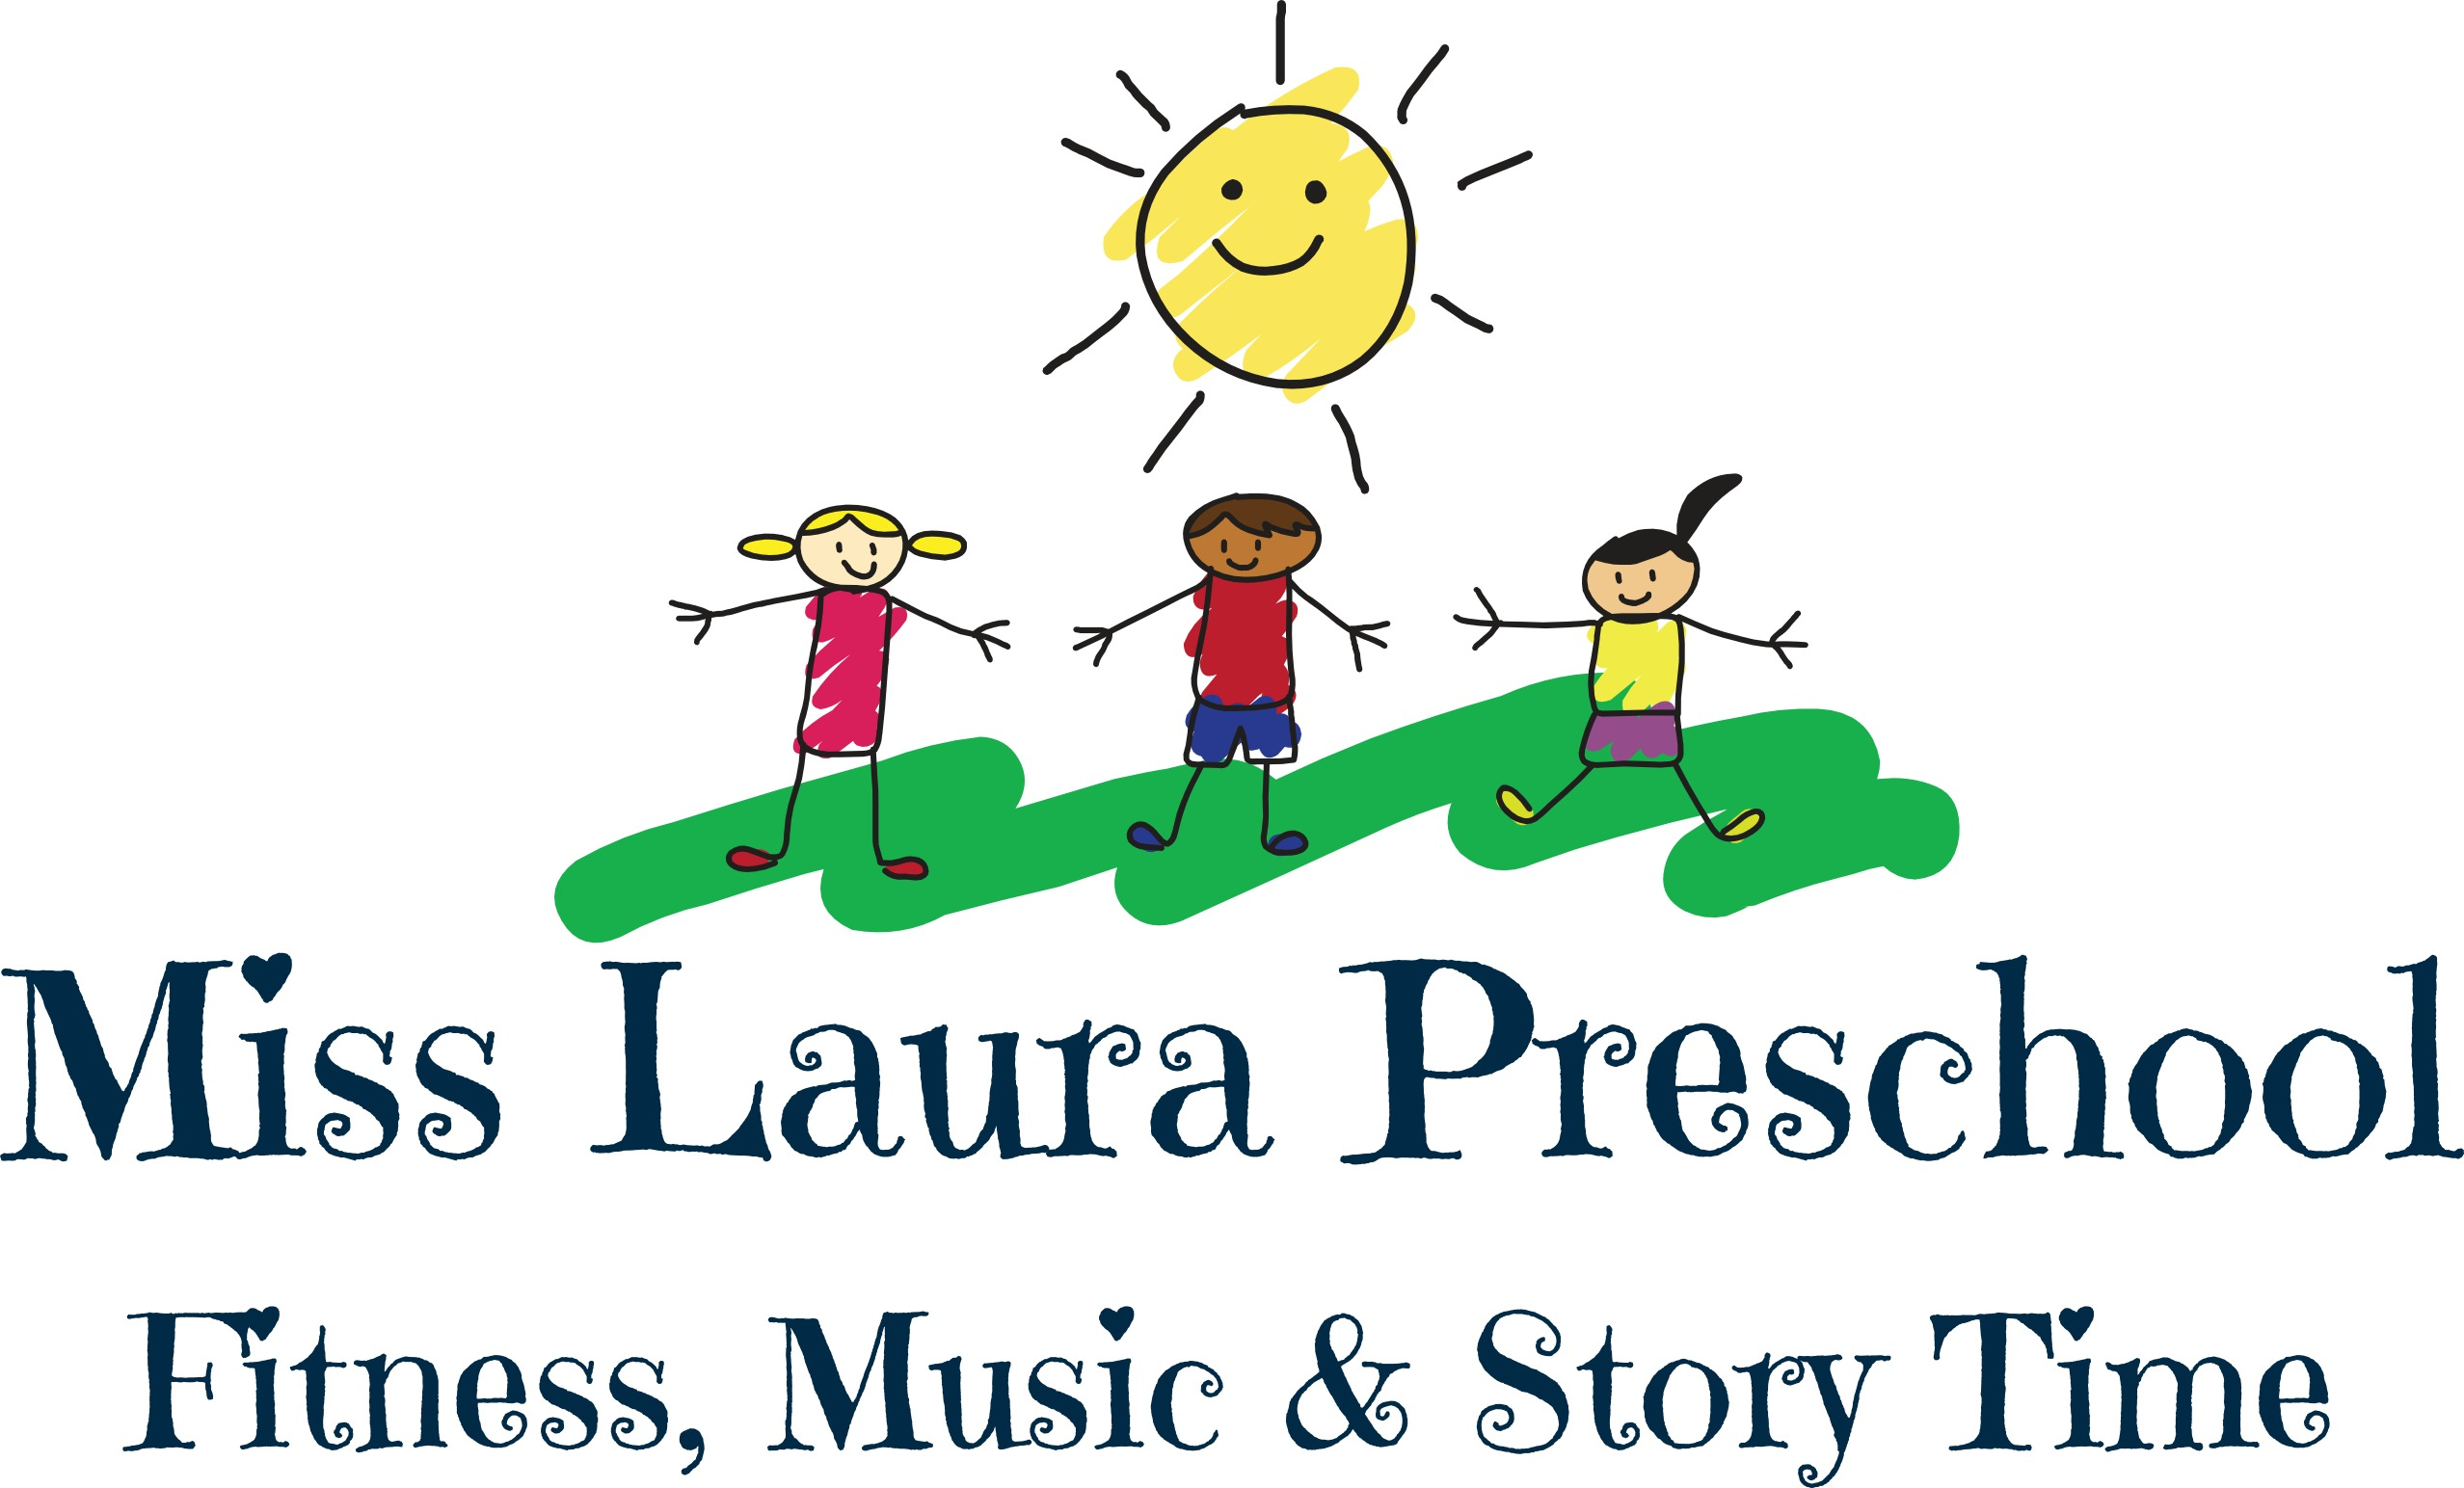 Miss Laura's Preschool Programs